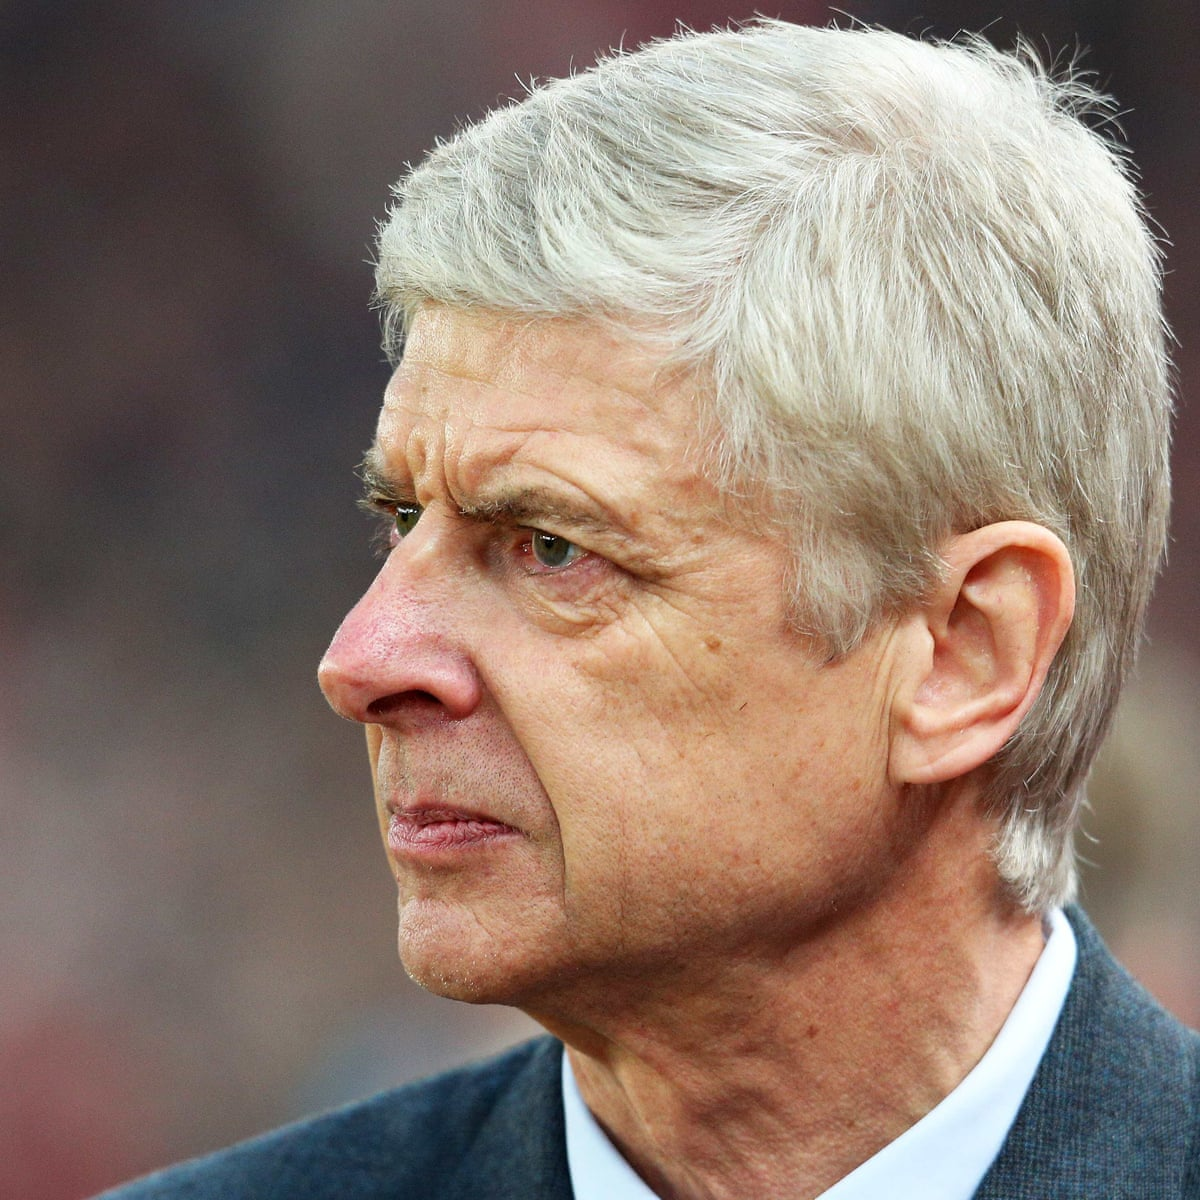 Arsène Wenger happy to help UK Anti-Doping agency investigate football | Football | The Guardian